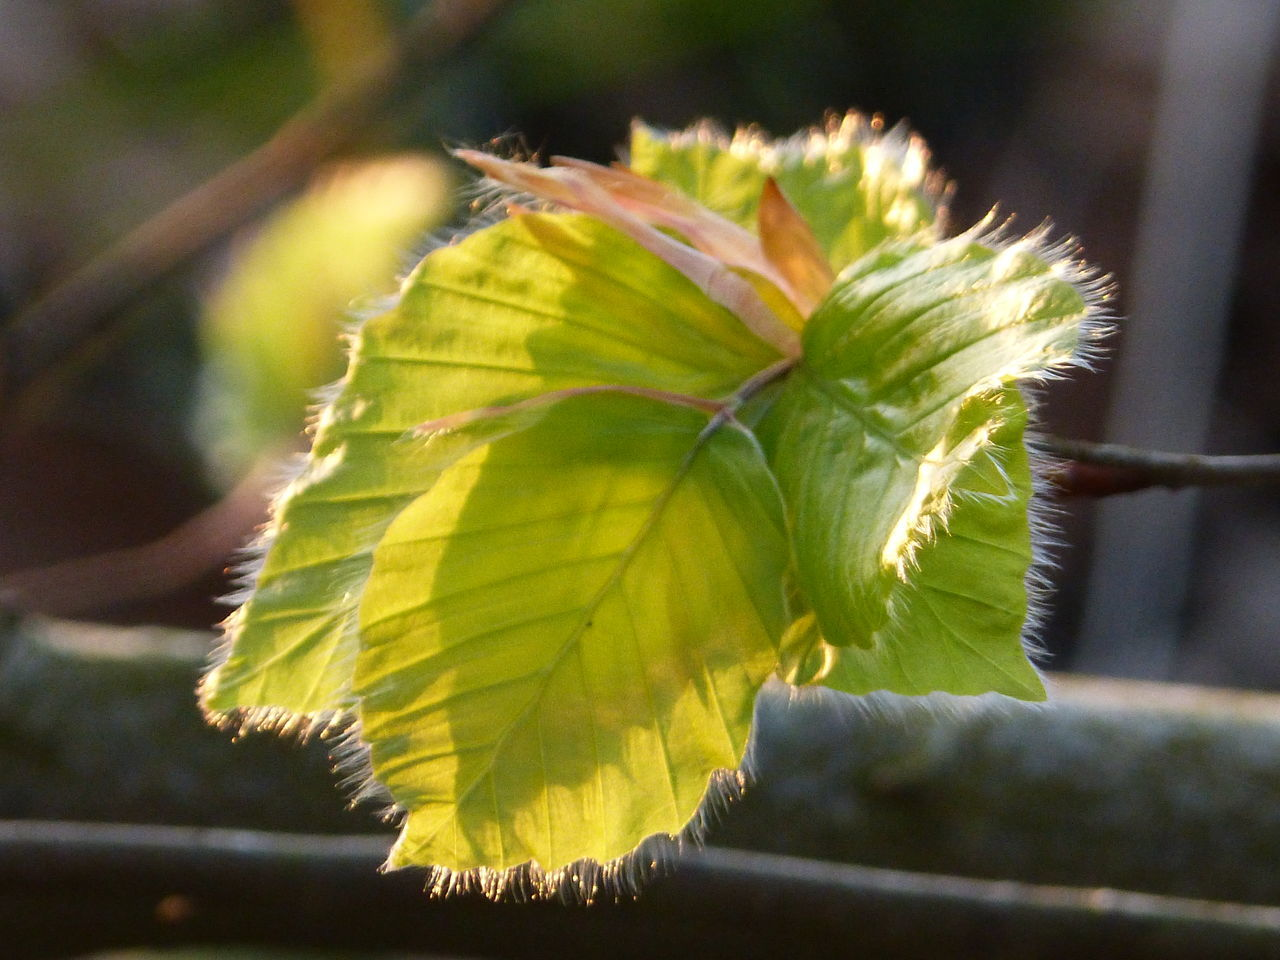 leaf, nature, close-up, growth, plant, no people, green color, focus on foreground, day, outdoors, beauty in nature, fragility, freshness